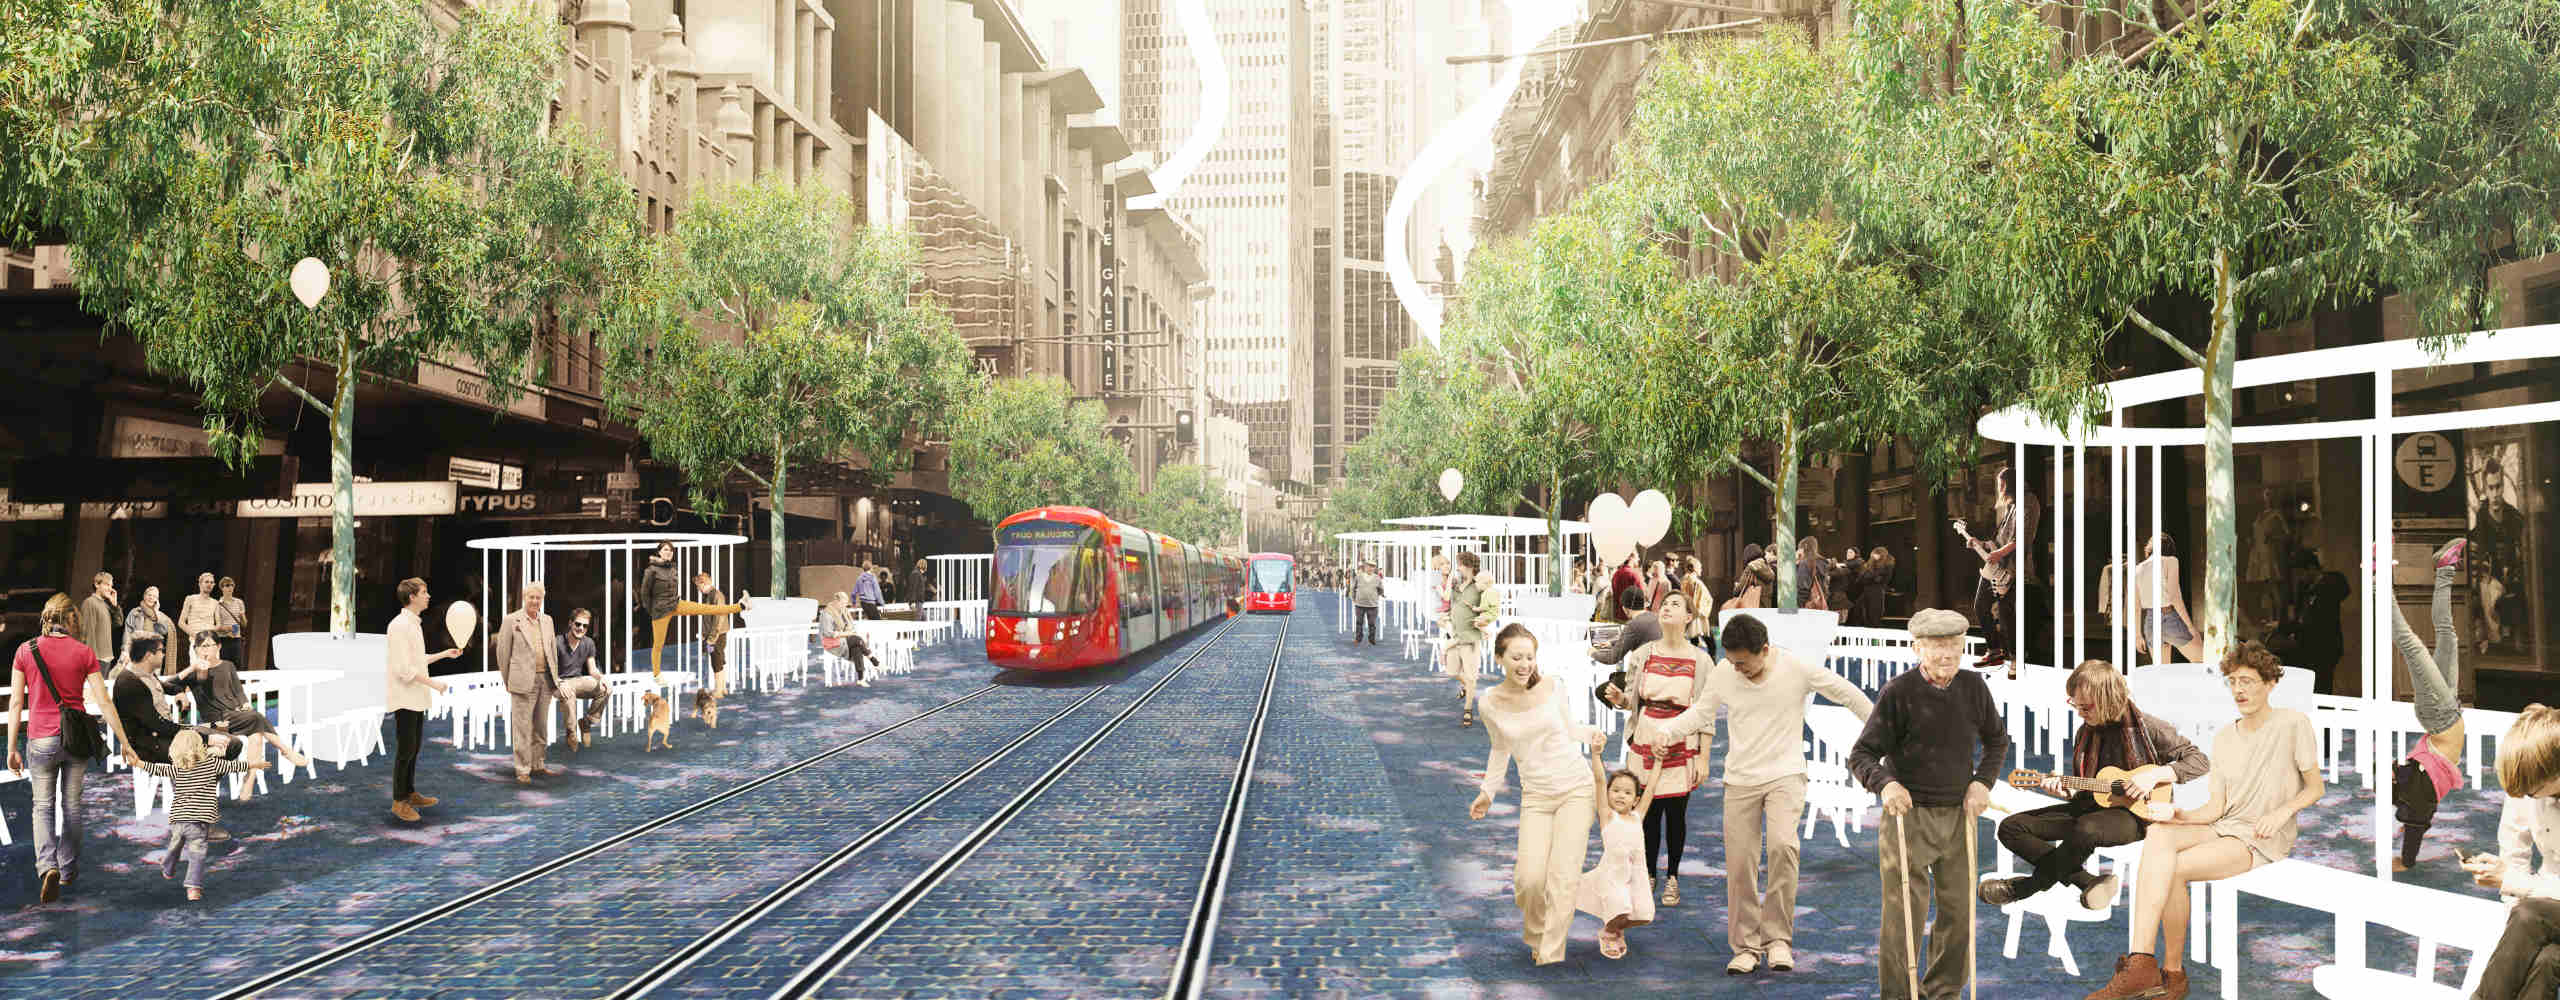 Here's What Sydney's CBD Could Look Like in 2020